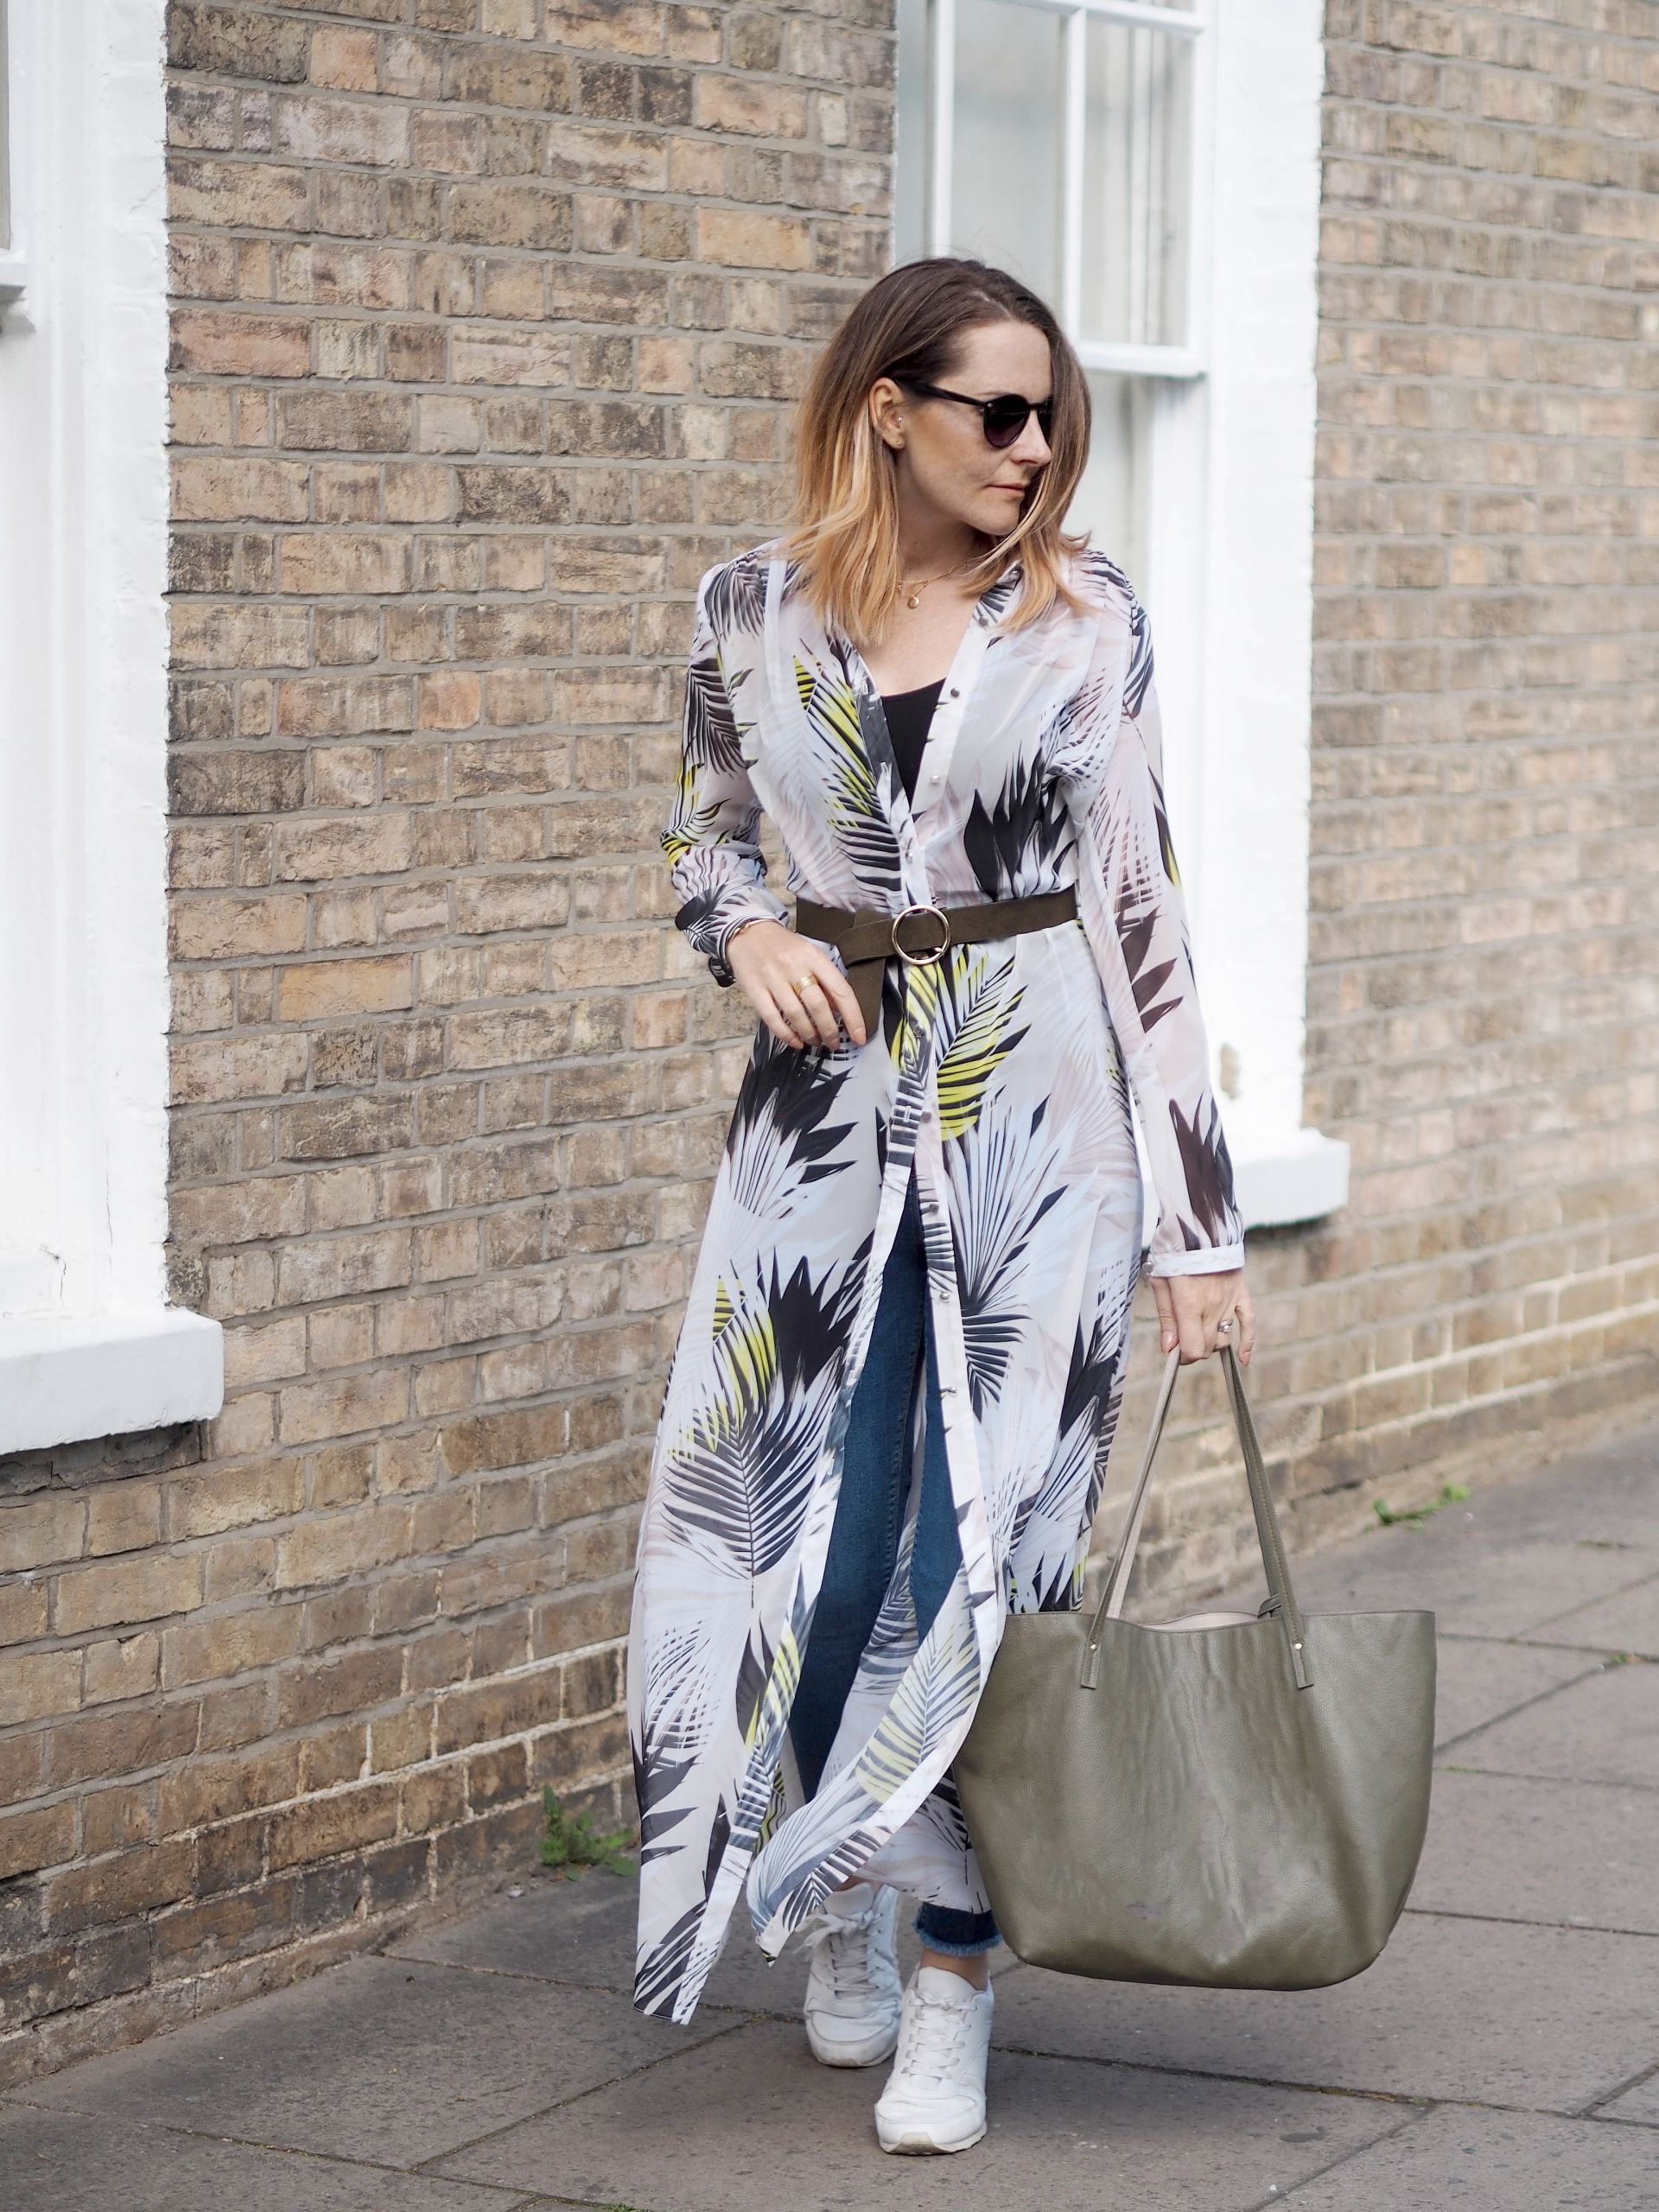 5 Styling Ideas on Shirt Dress Outfits | Style Wile